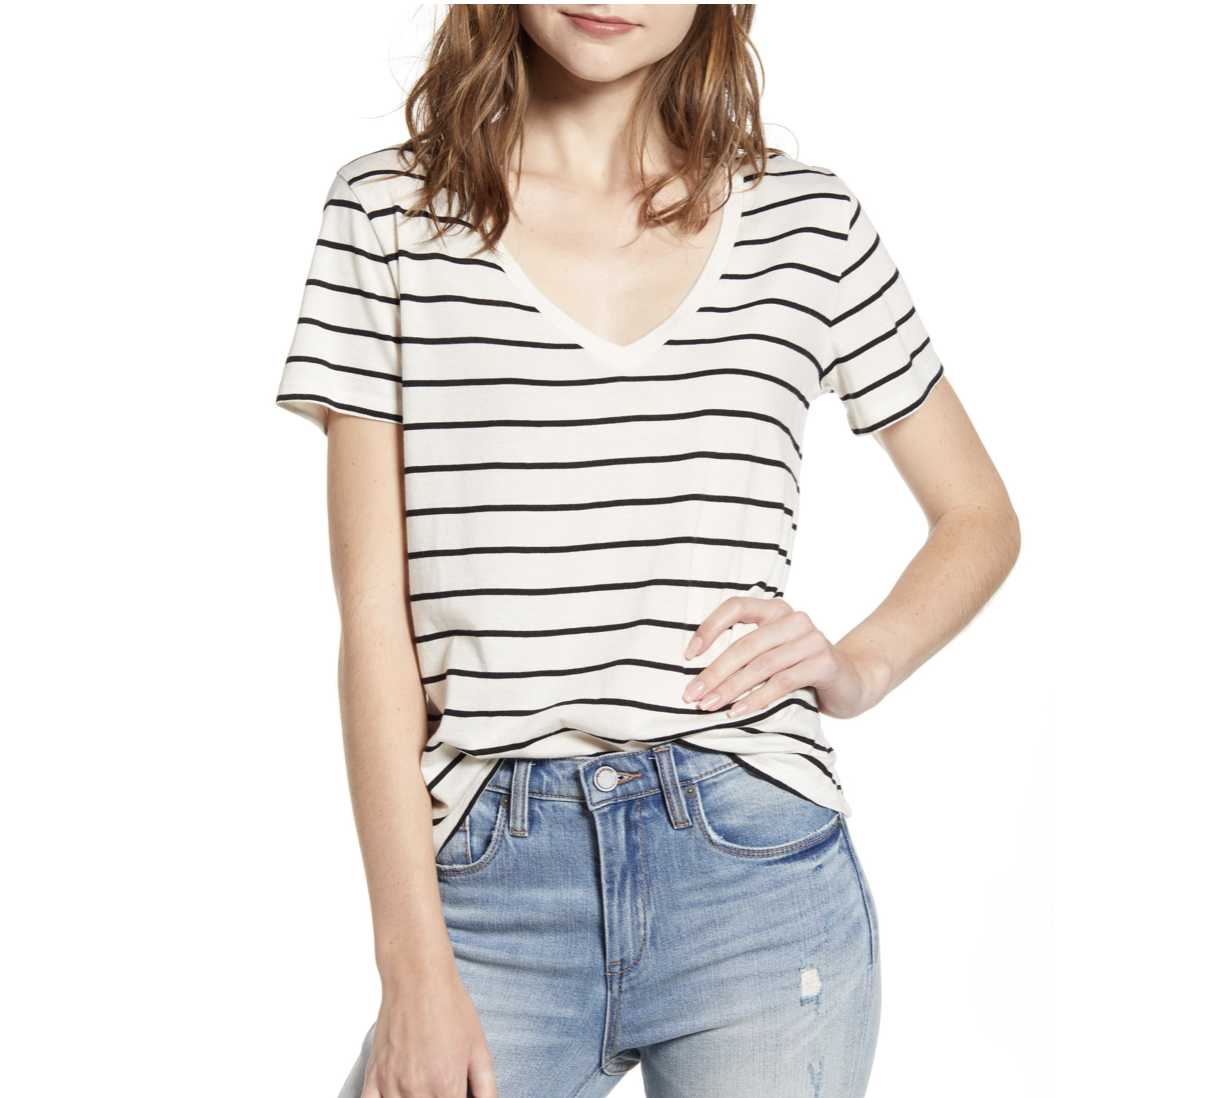 Black and White Striped Tee | Nordstrom Anniversary Sale 2019 | A Demure Life Fashion Blog